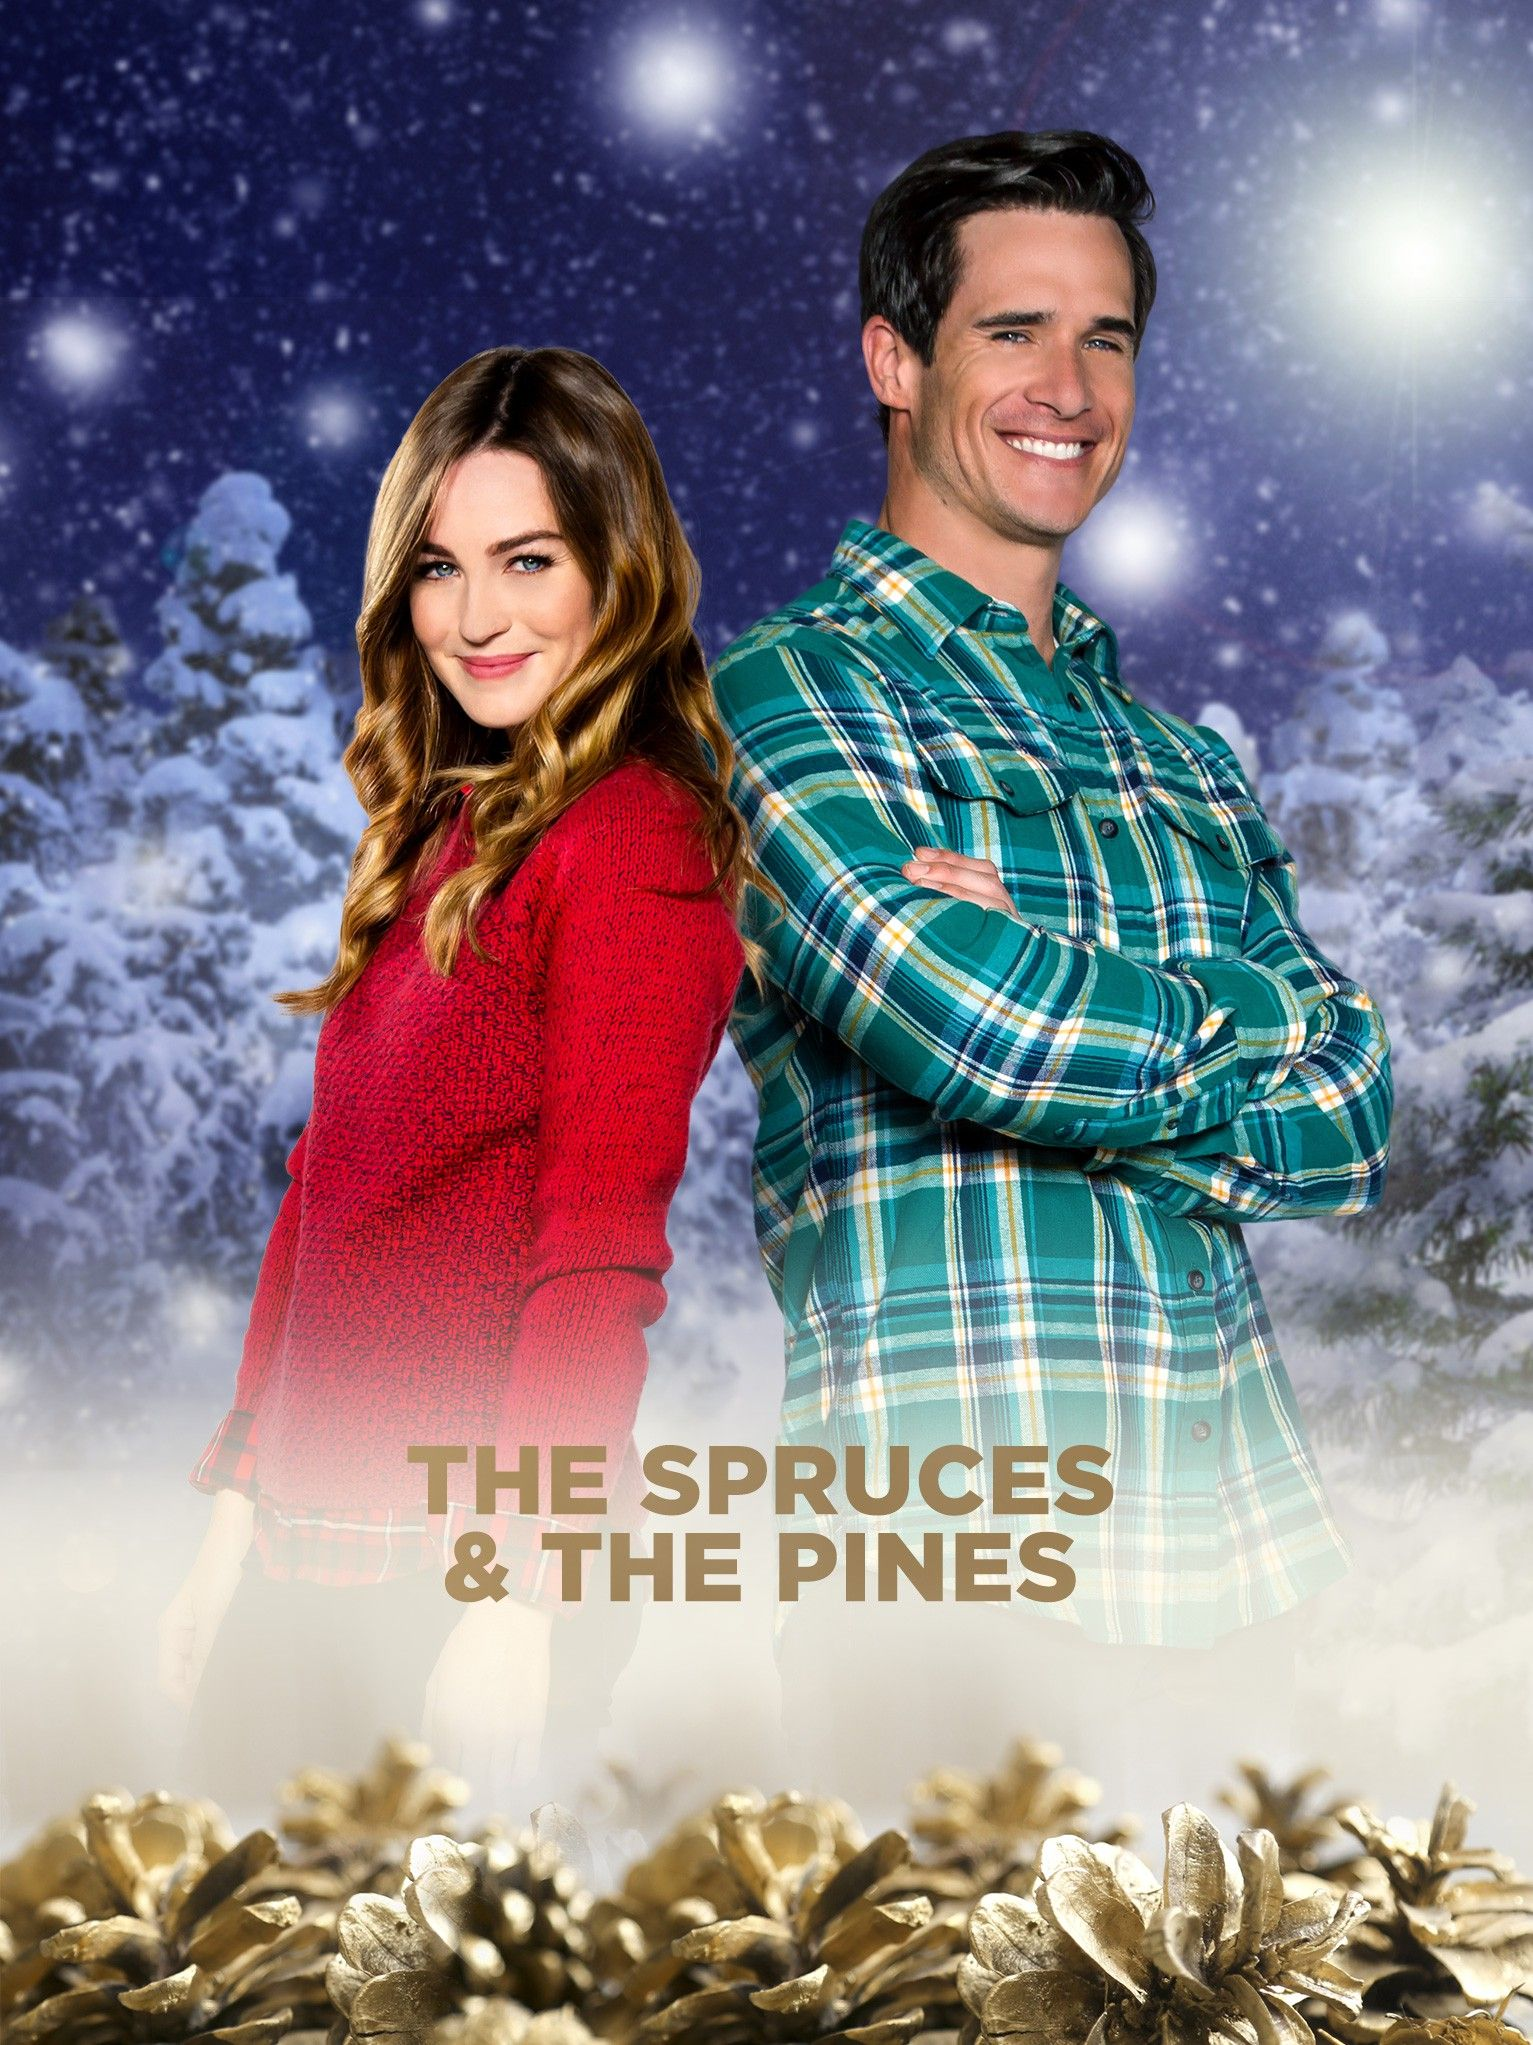 The Spruces & The Pines Holiday movie, About time movie